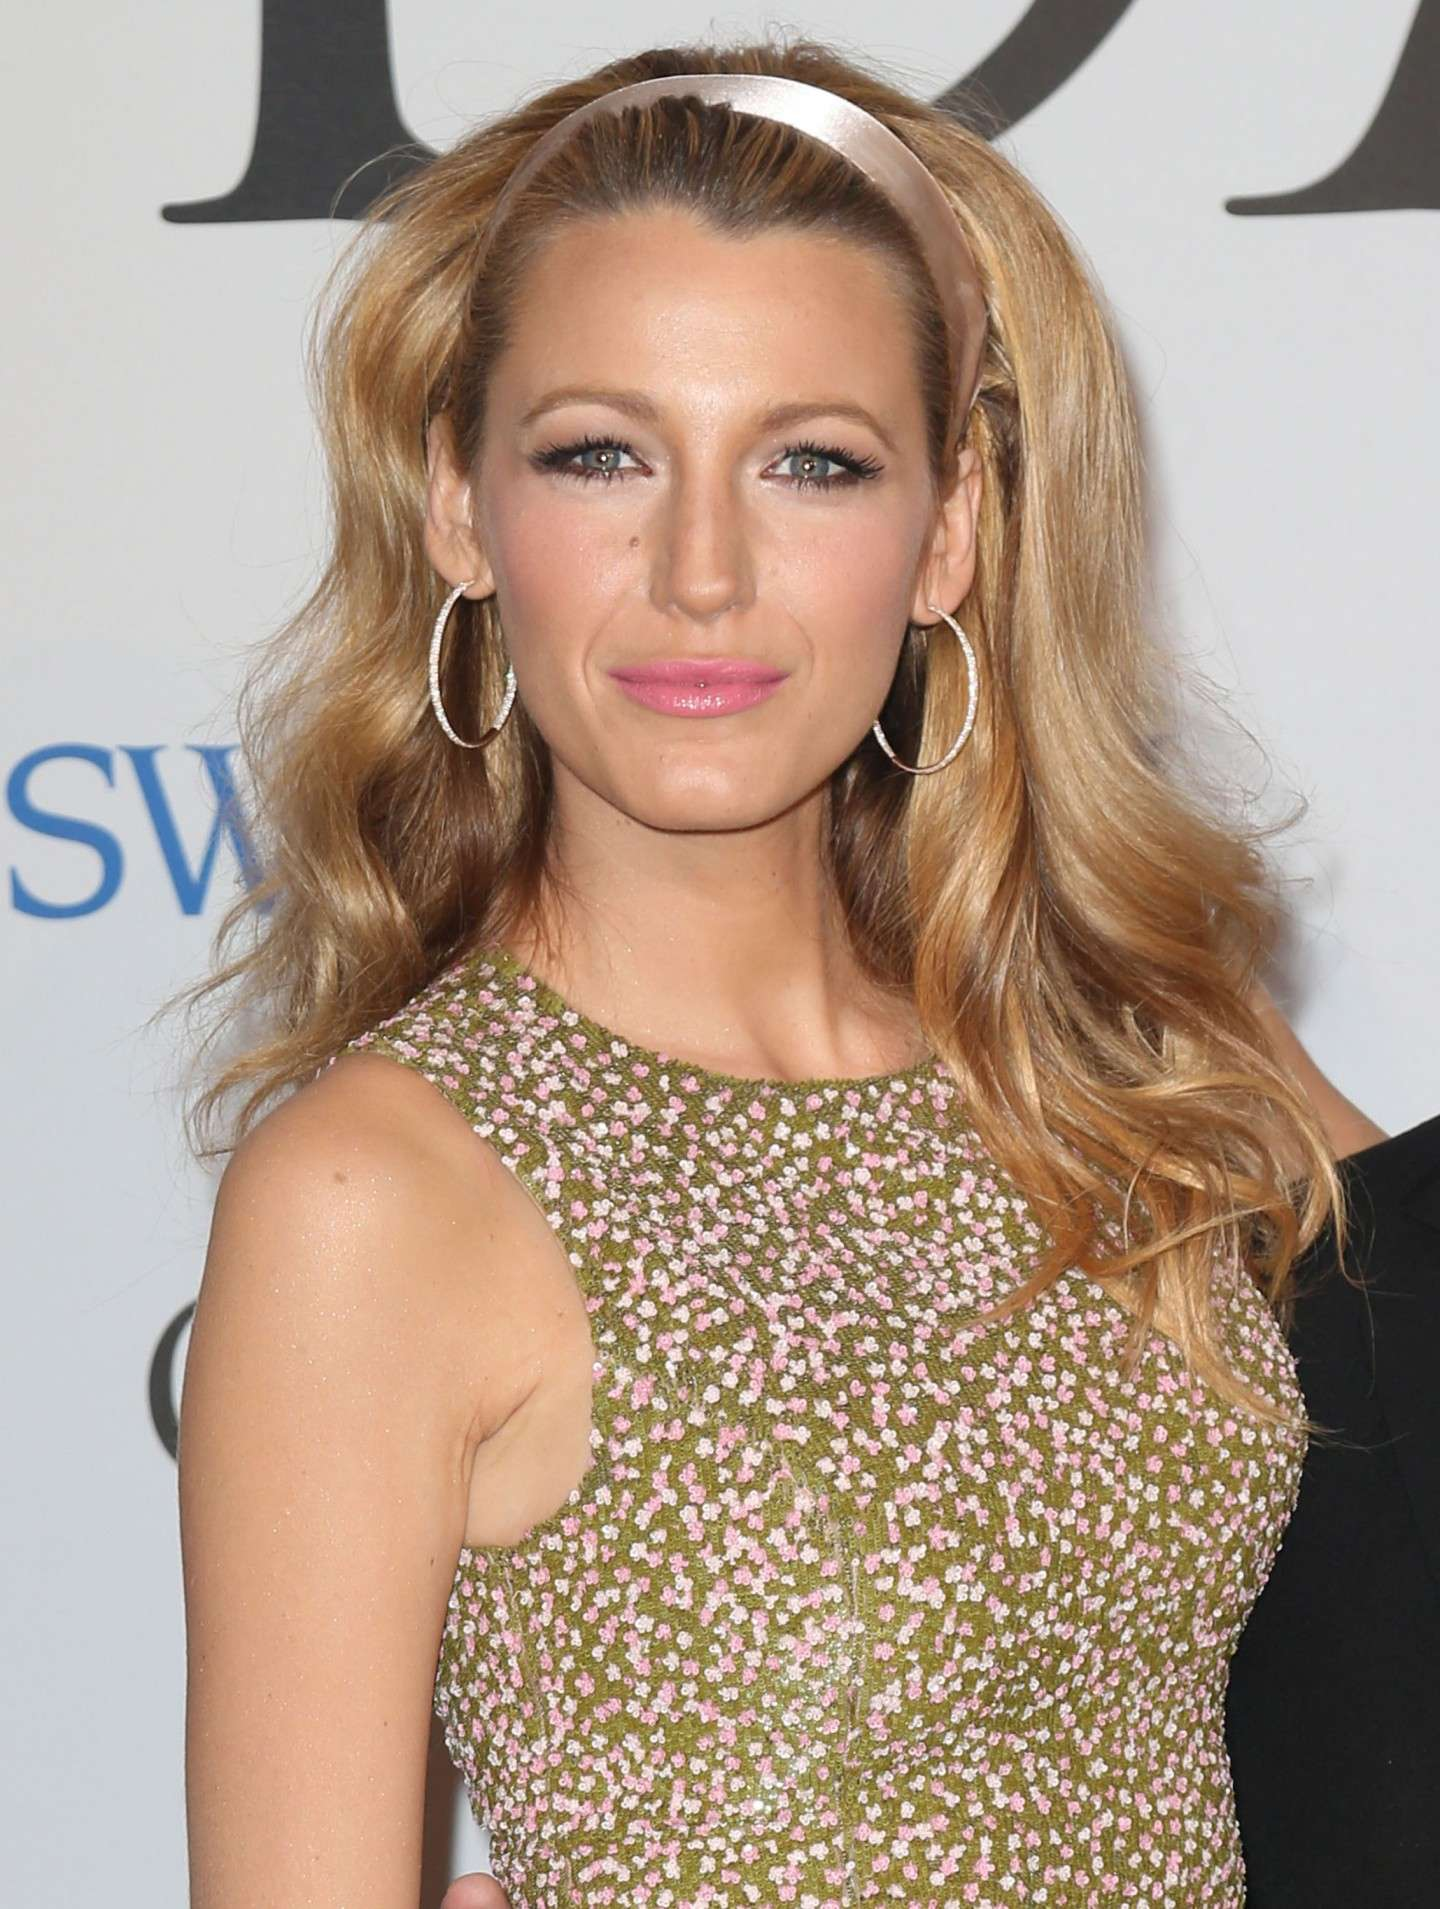 Blake Lively con look anni 50